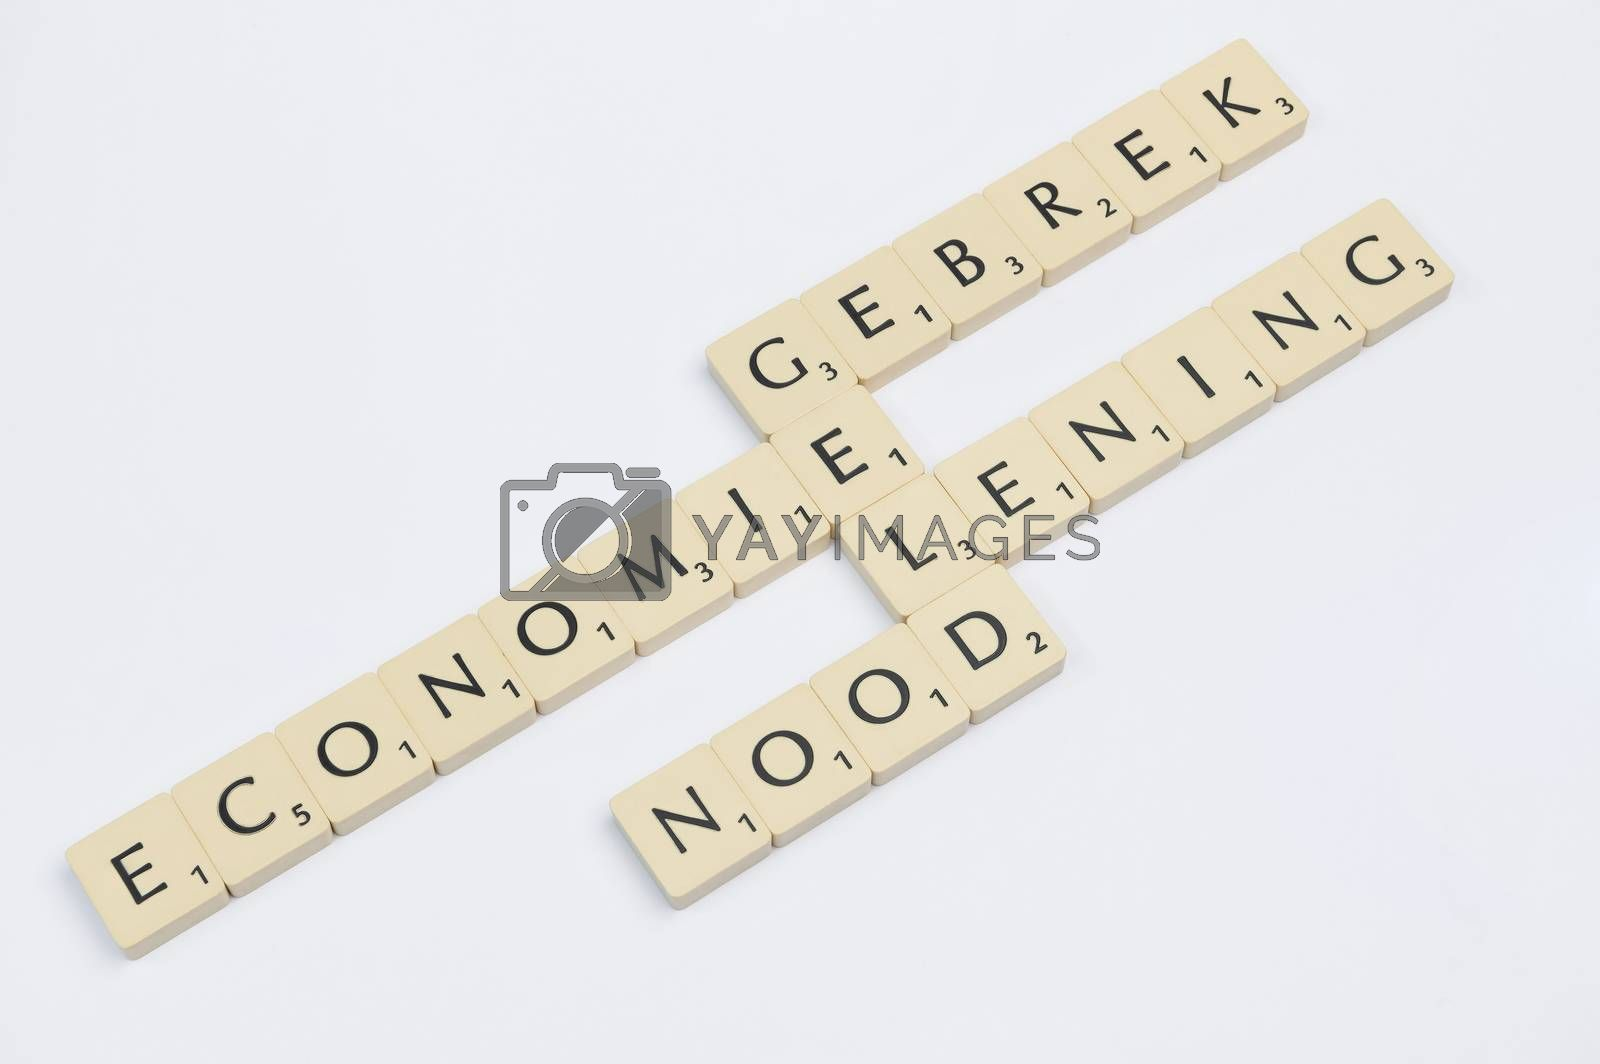 Four scrabble words related to the word money in Dutch